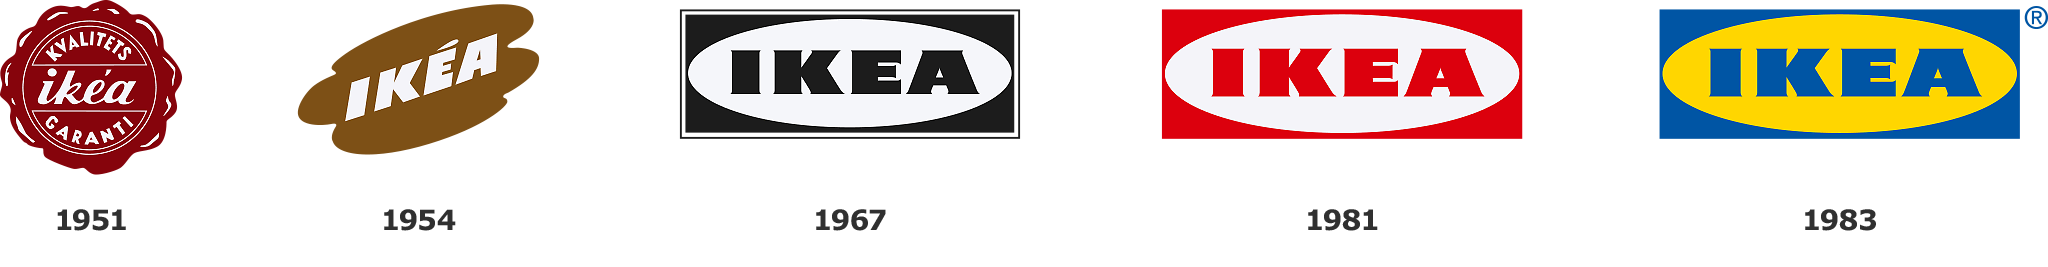 Ikea Logo Renovation Can You Spot The Changes The Designest Ikea Logo Ikea Renovations